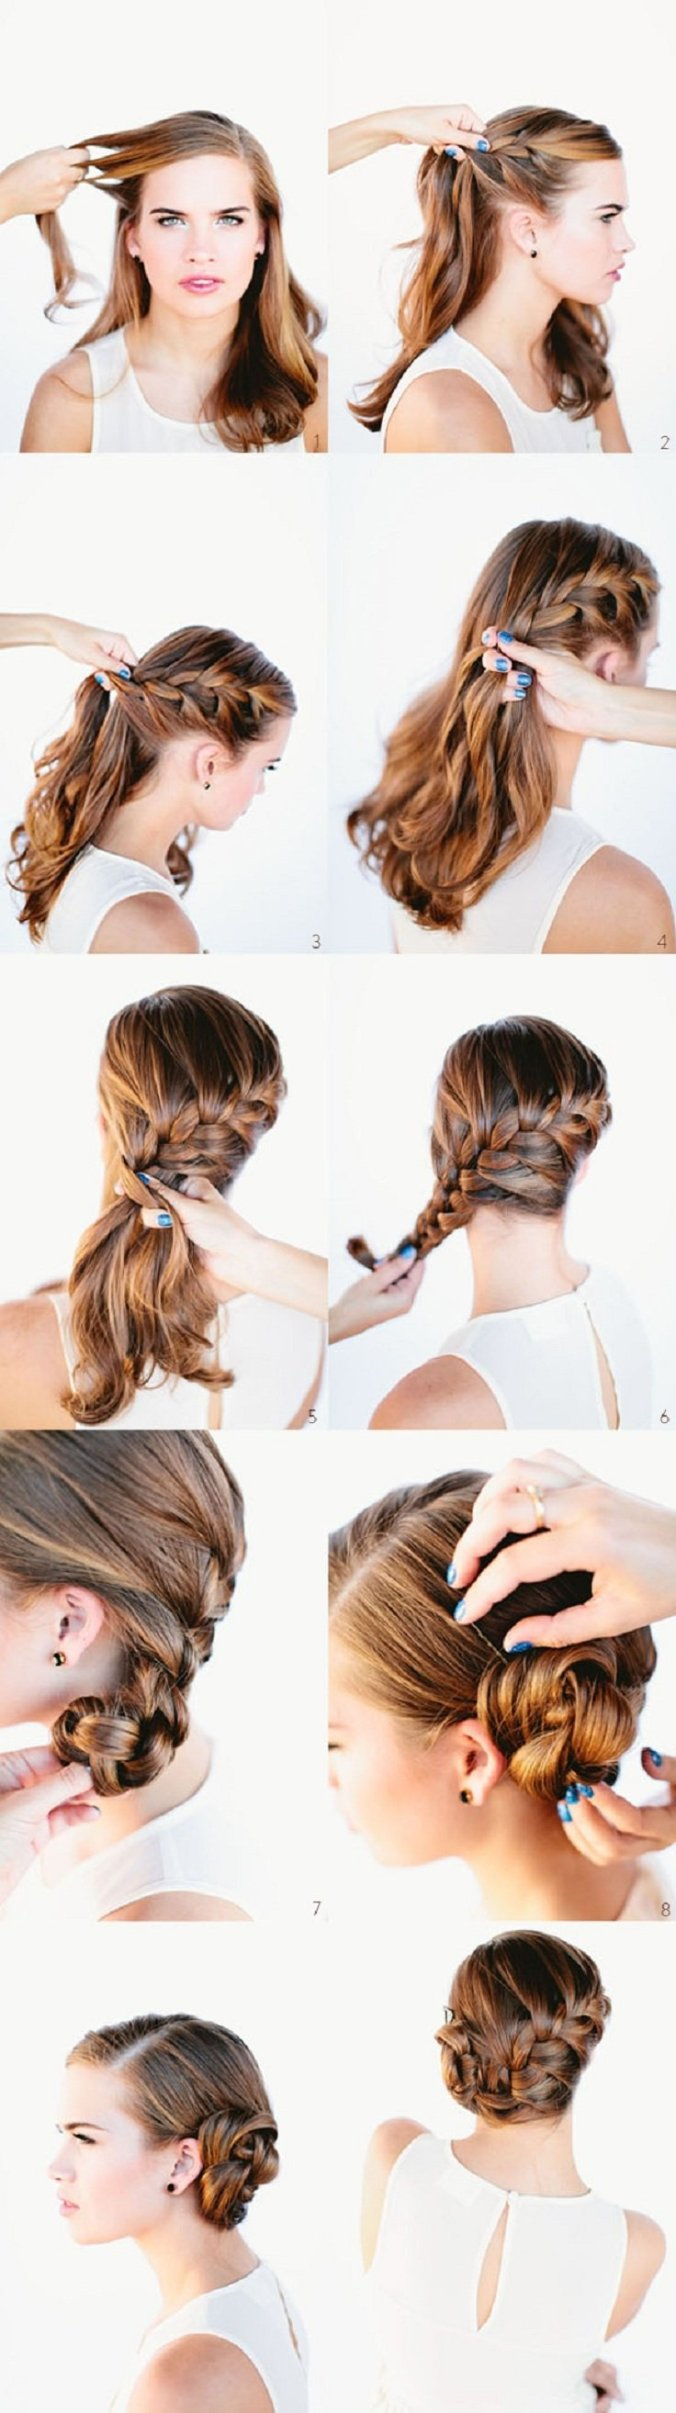 top-10-oktoberfest-braid-tutorials